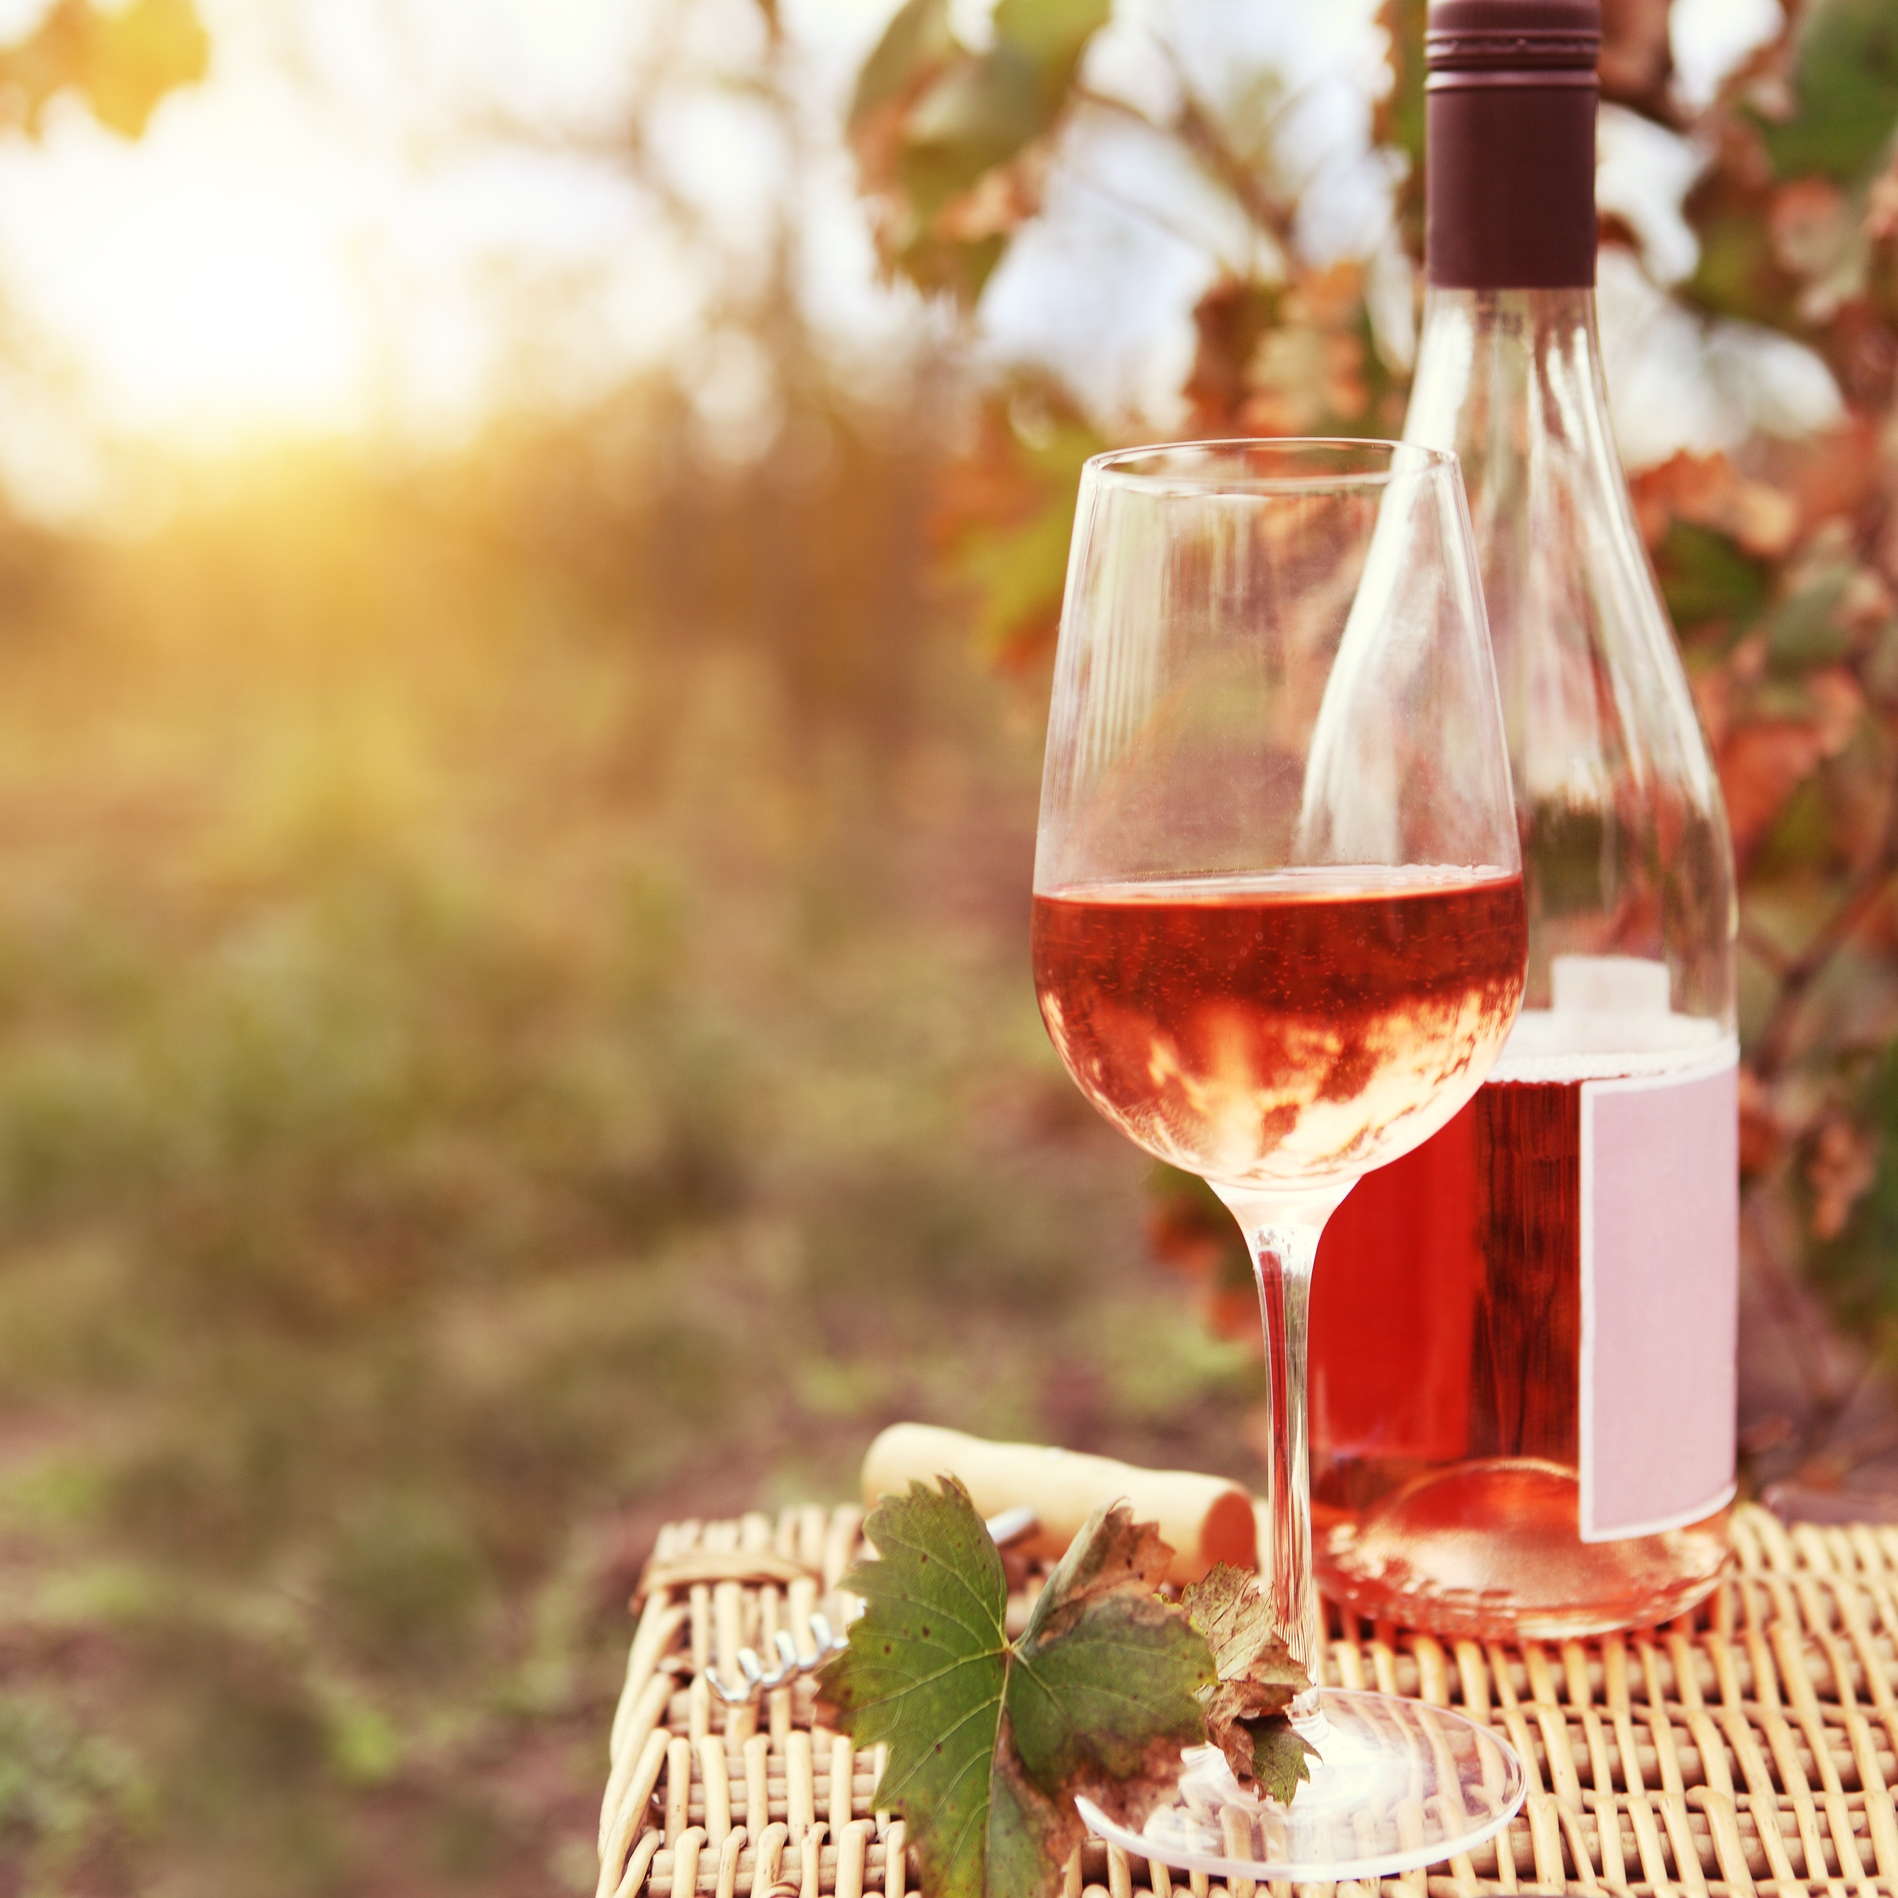 Picnic wine - Do Millennials Matter?